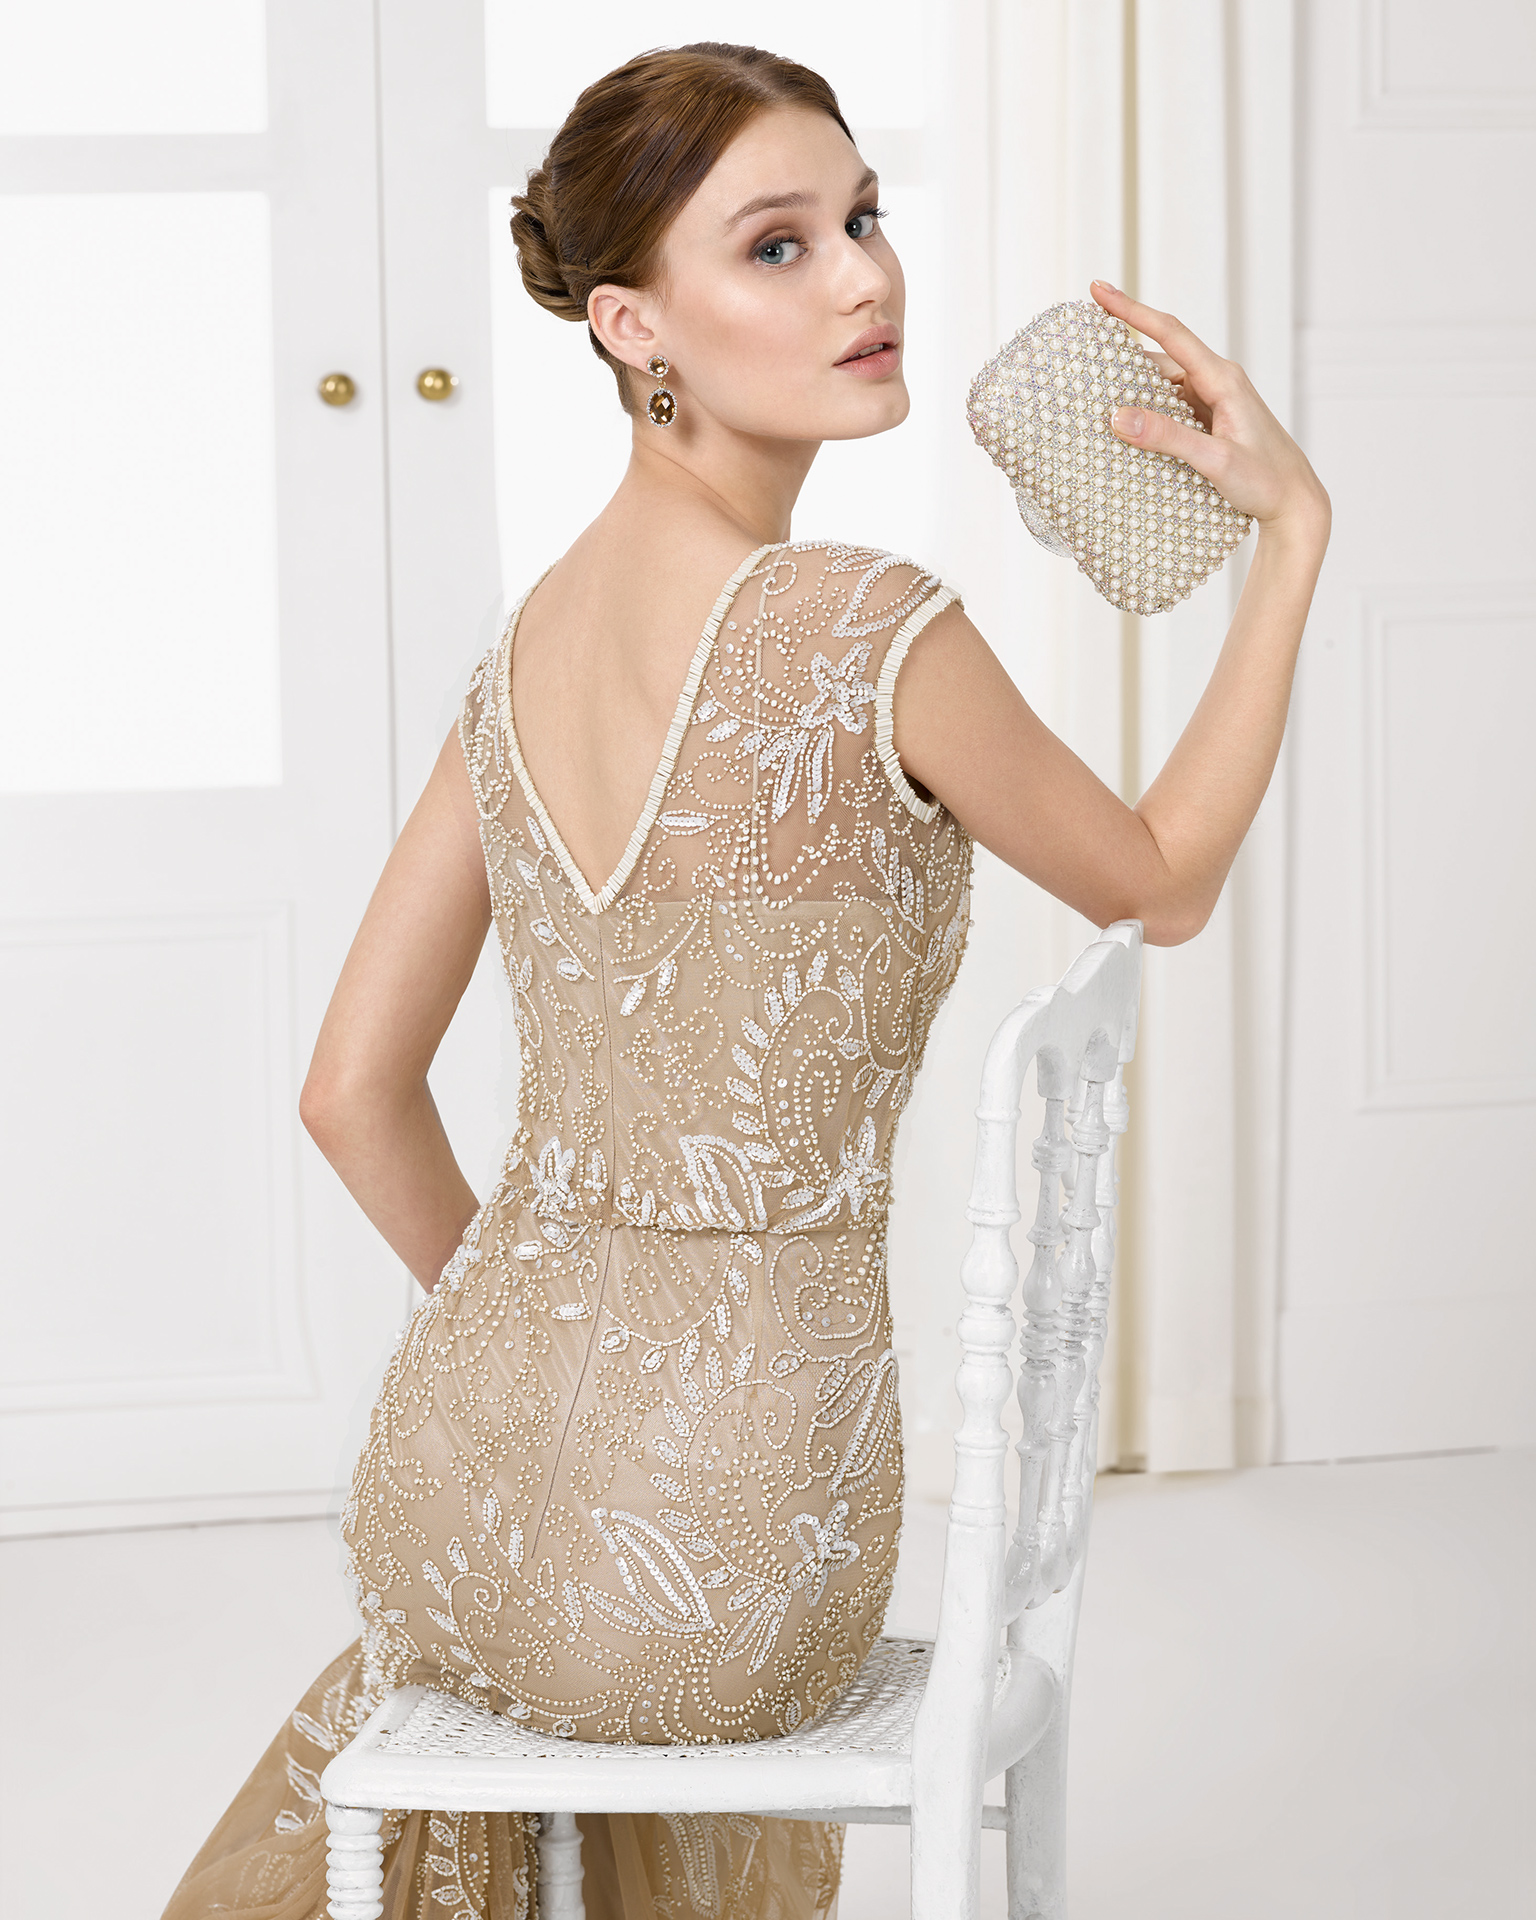 9U2C7 - Beaded cocktail gown.